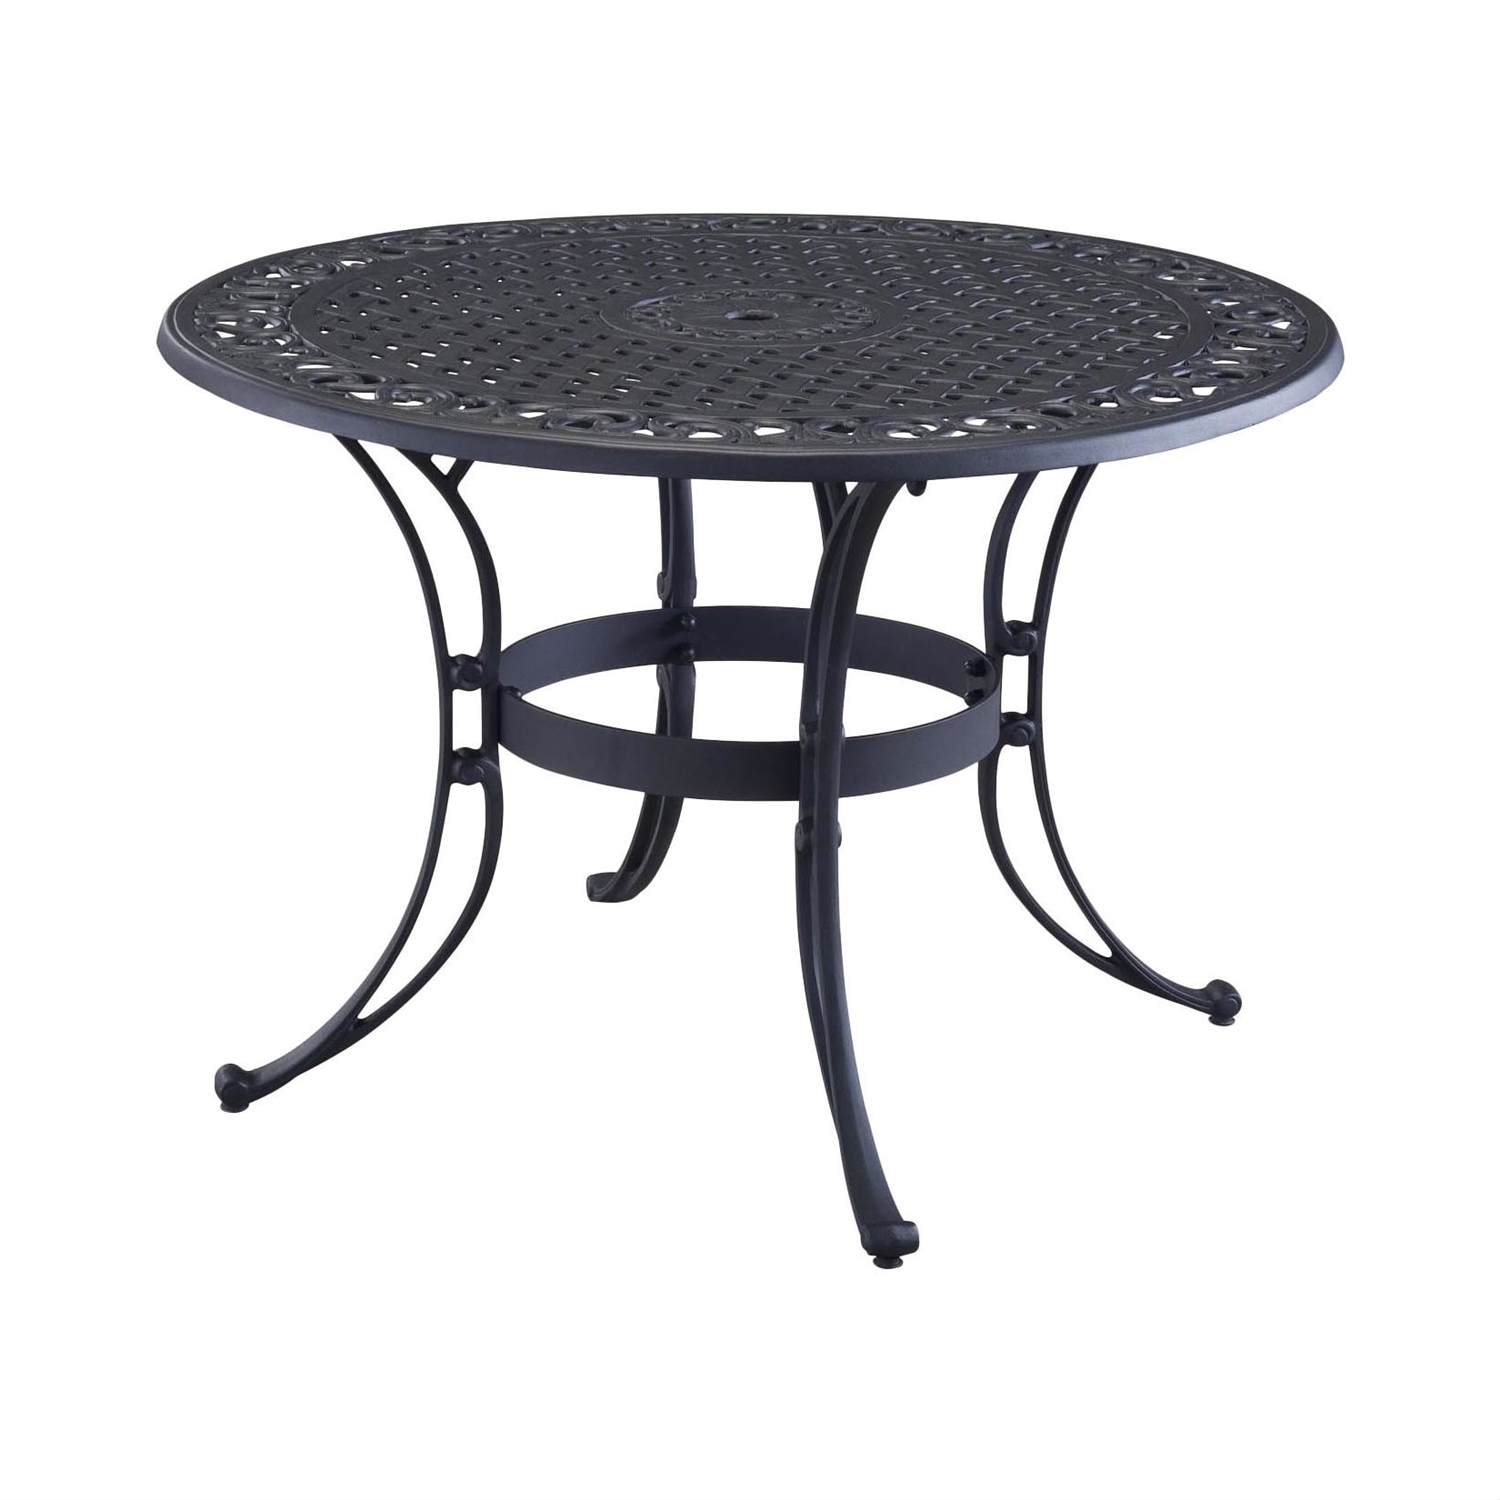 Patio Tables Outdoor Tables Made From Durable Materials